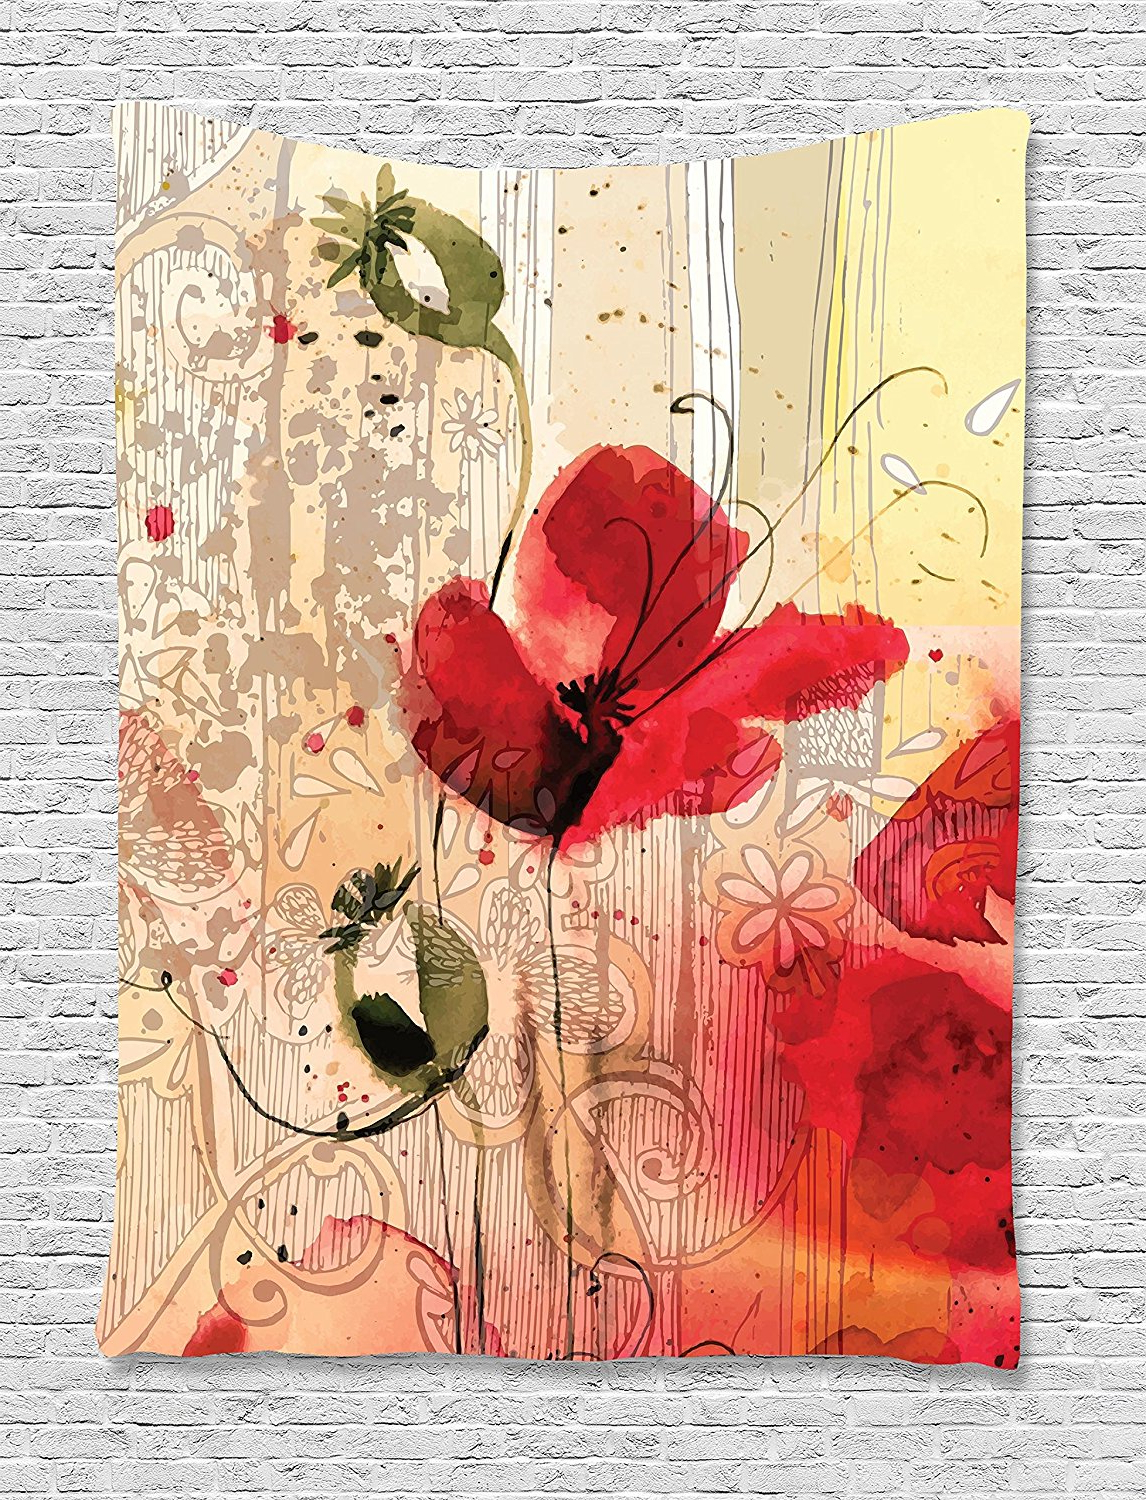 Flower Tapestry Decor, Red Poppy Flower Beige Floral Watercolor Design Digital Art Print Spring Plants, Wall Hanging For Bedroom Living. (View 13 of 20)